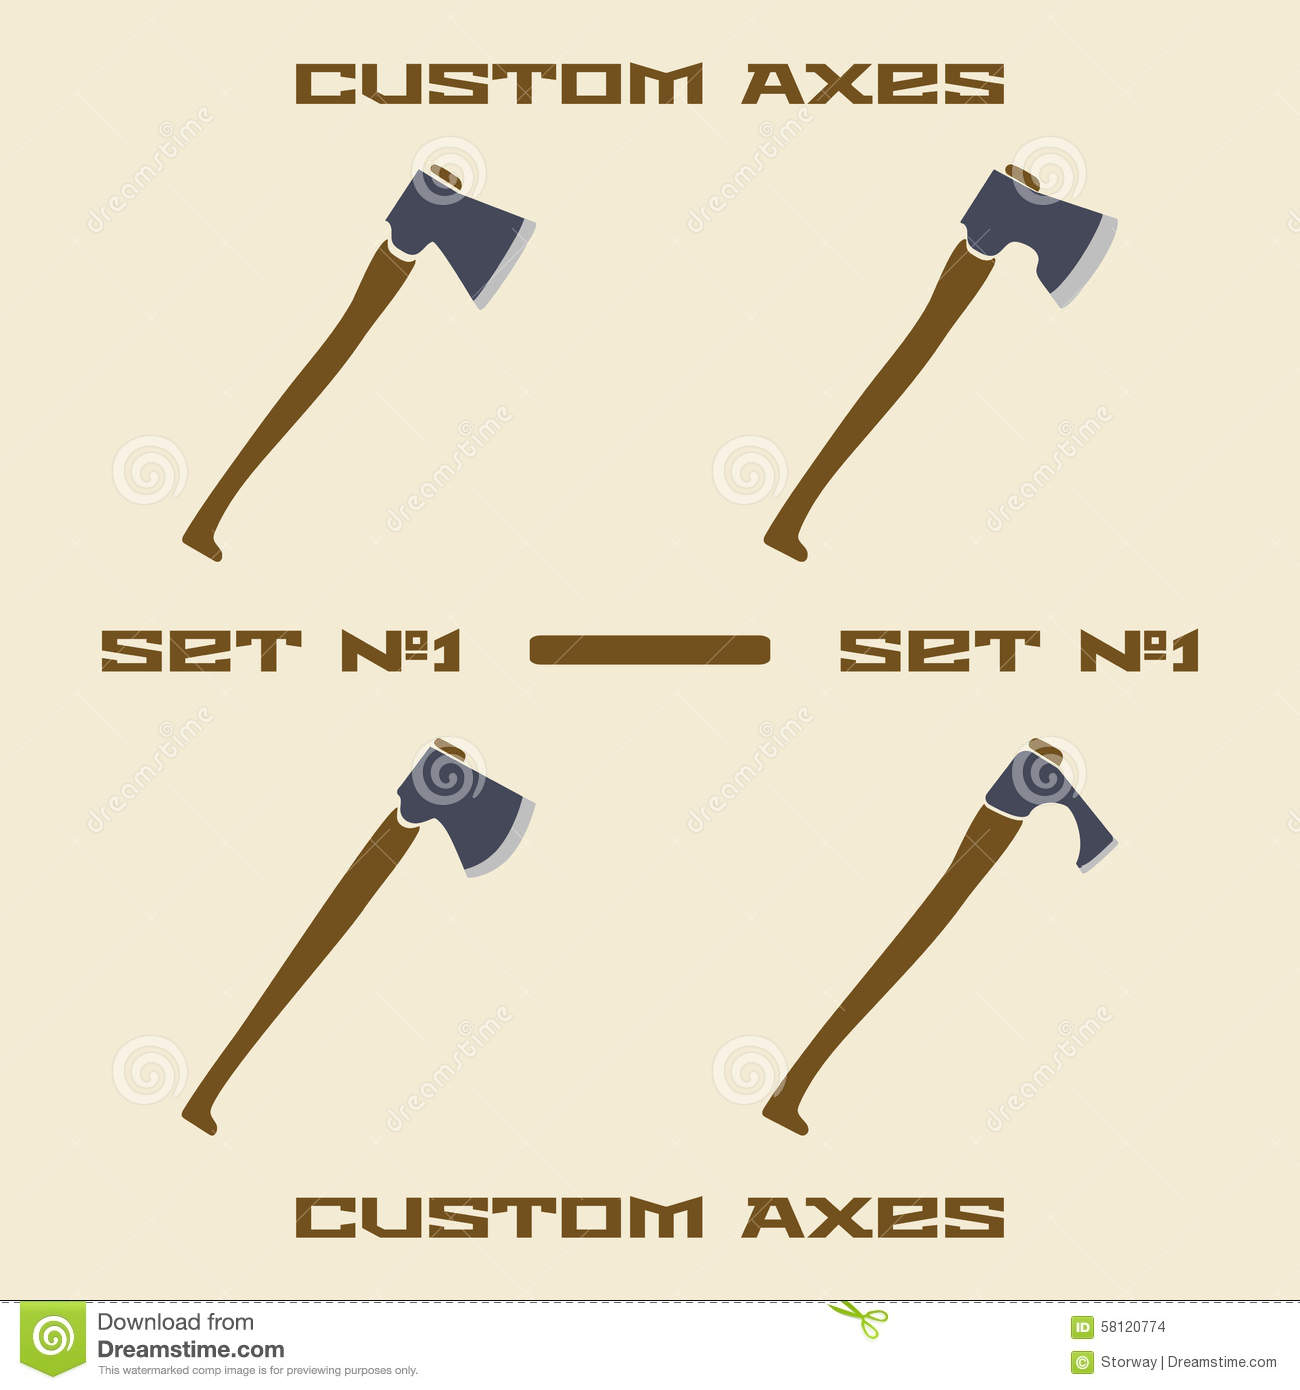 different axe types icon set design template stock vector image